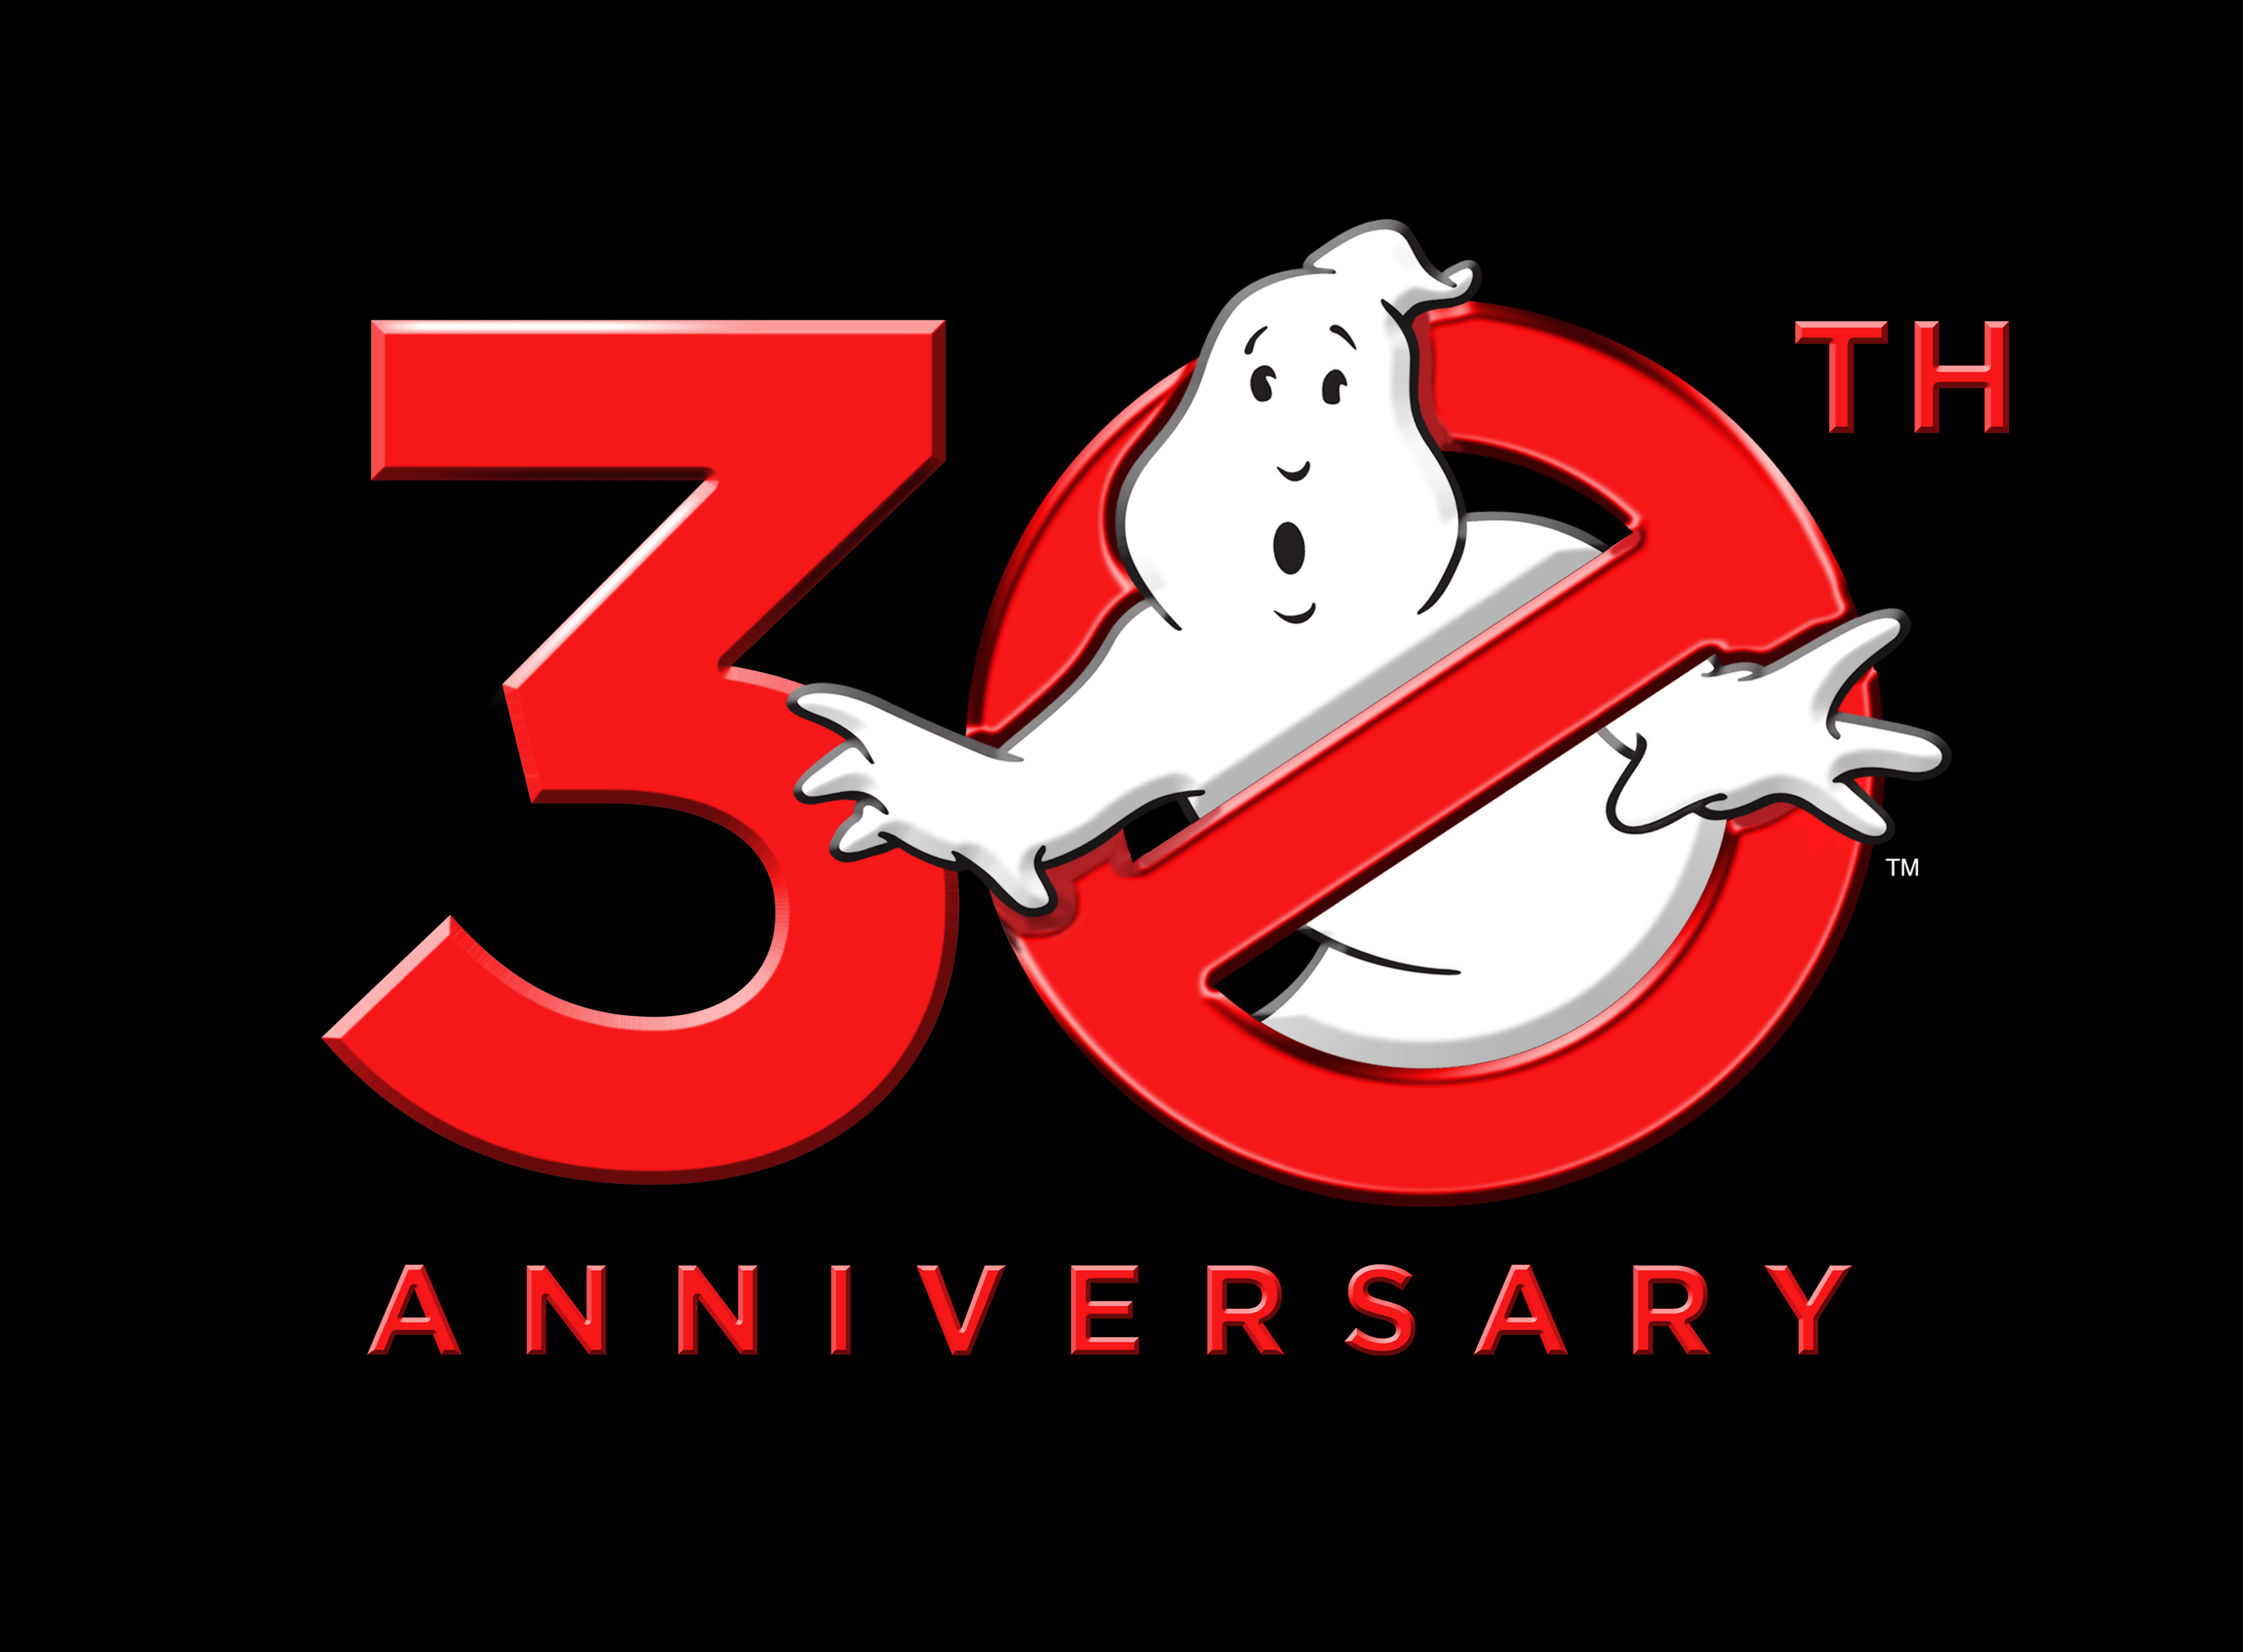 Ghostbusters/Anniversary